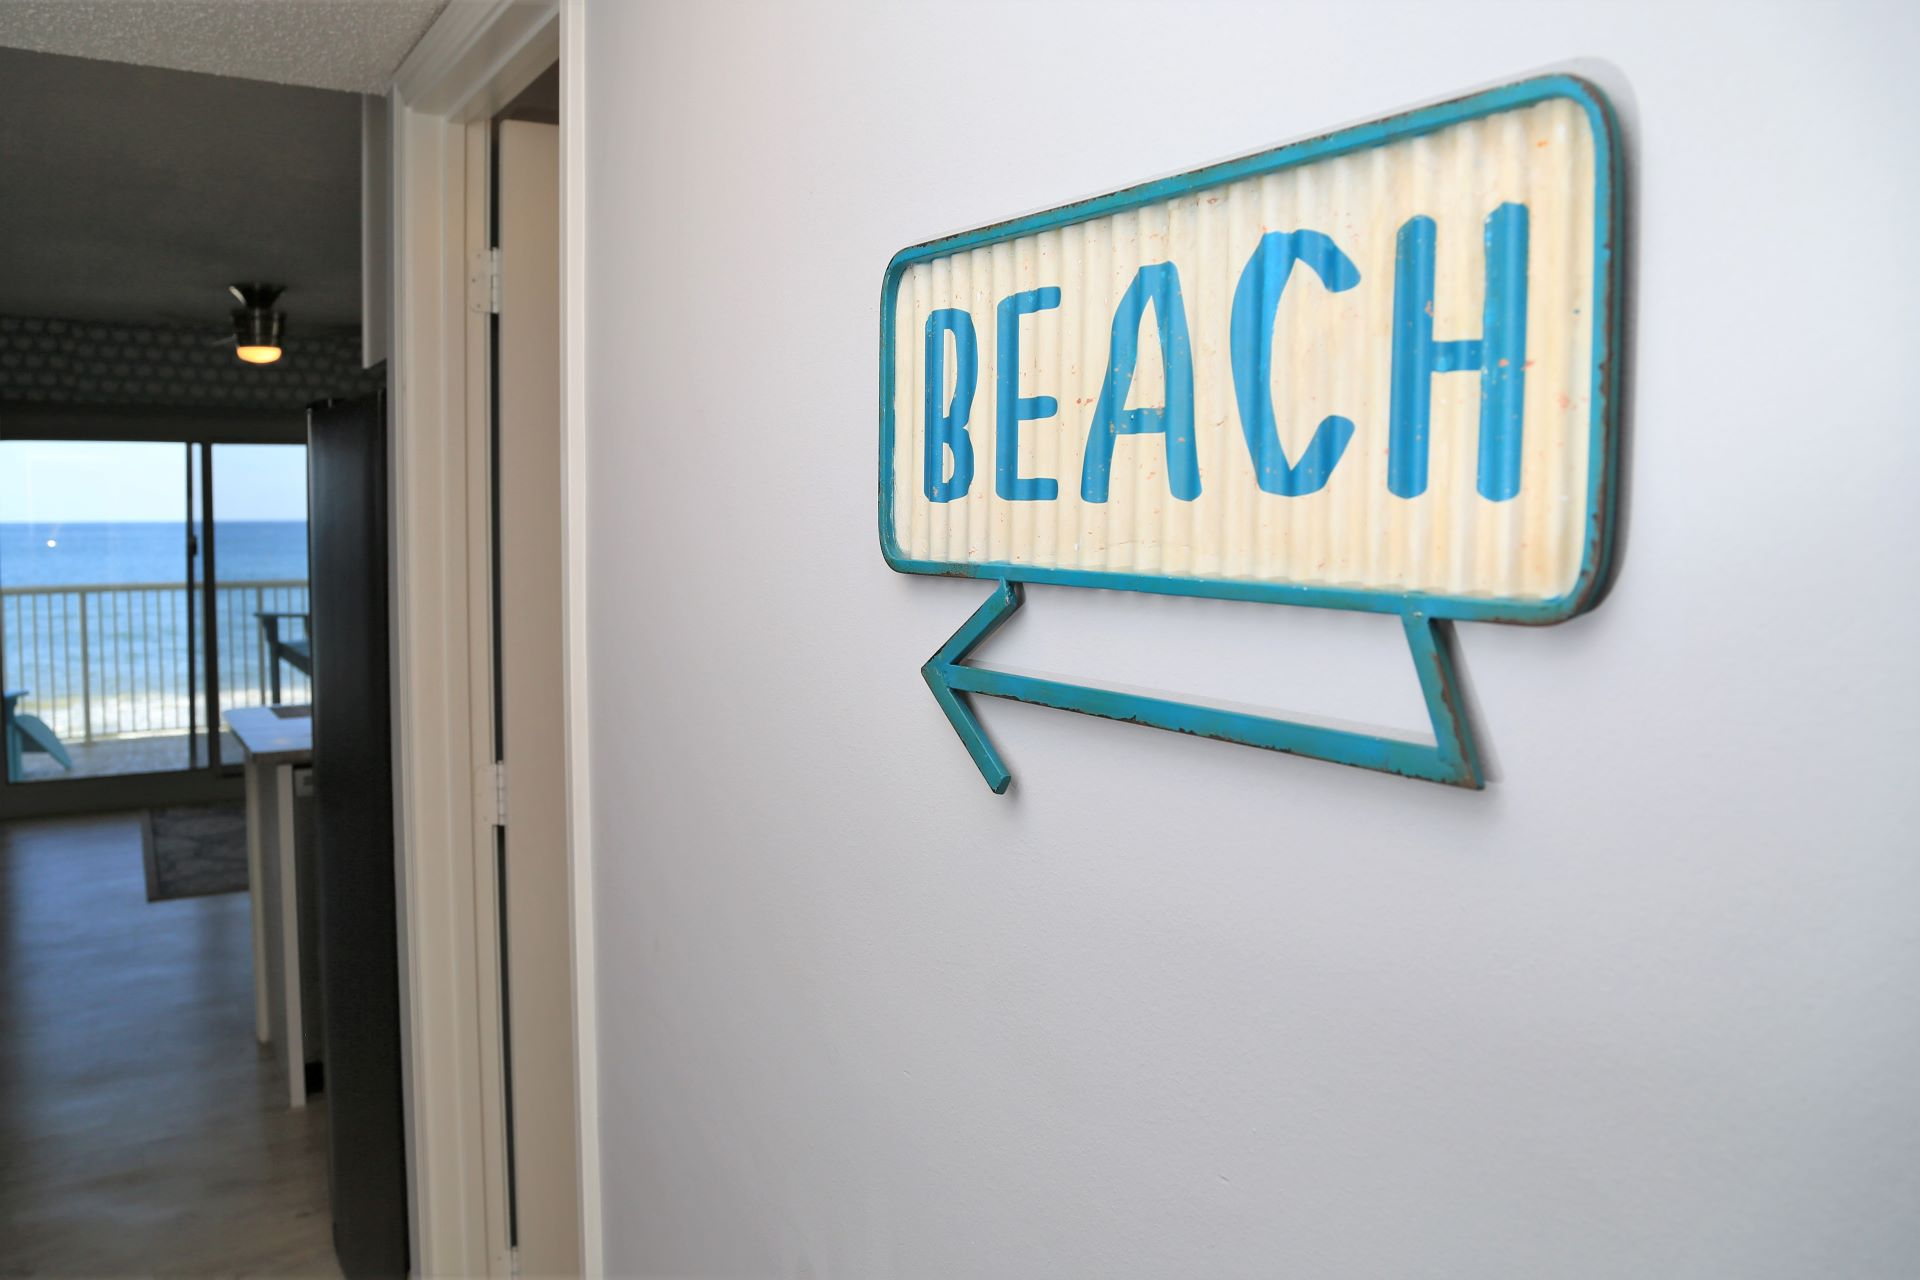 Direct beach front, Reserve Royal Palms 402 today!